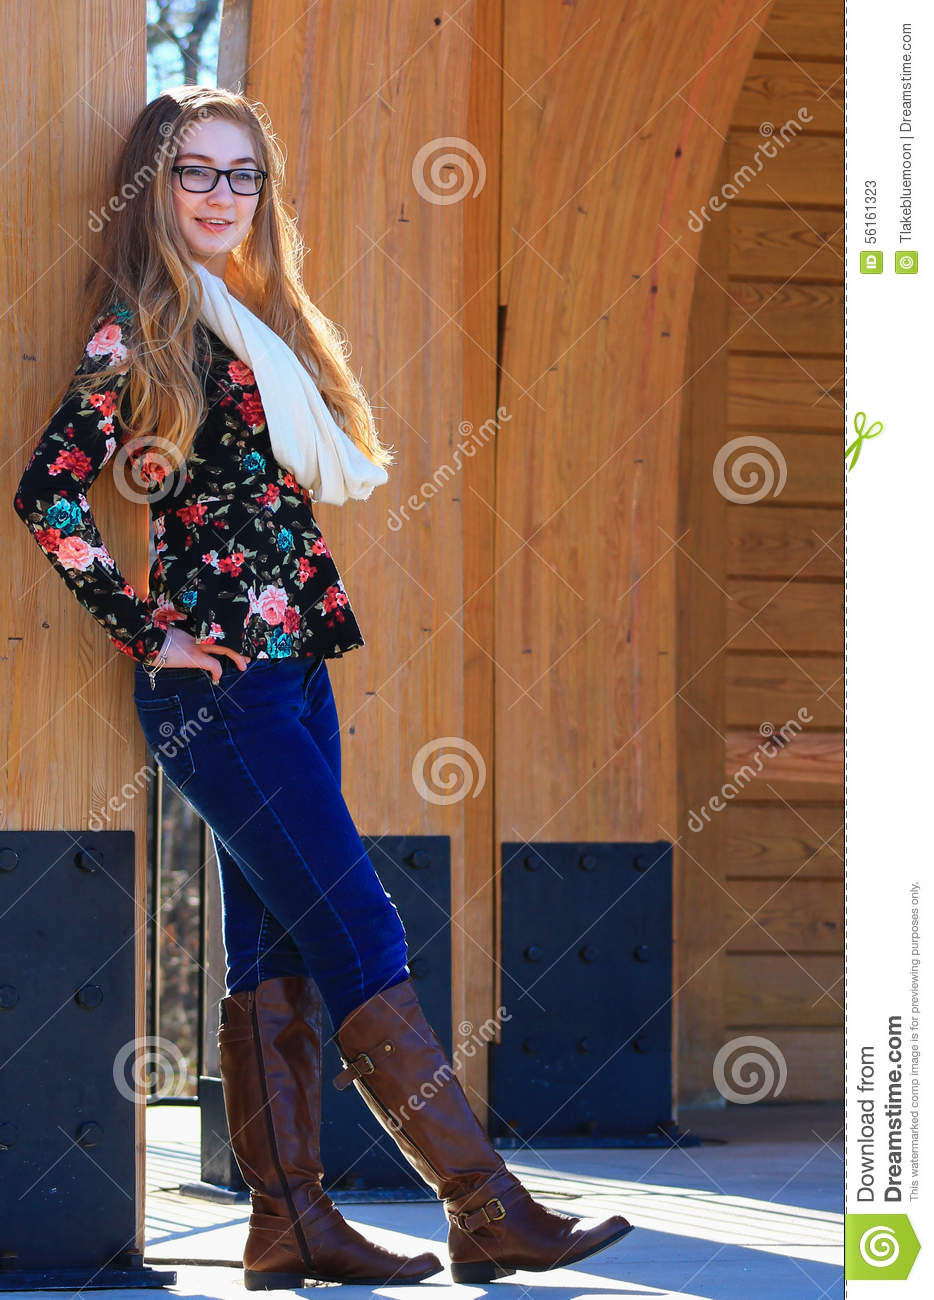 Teen girl-fall fashion 3 stock image. Image of confident - 56161323